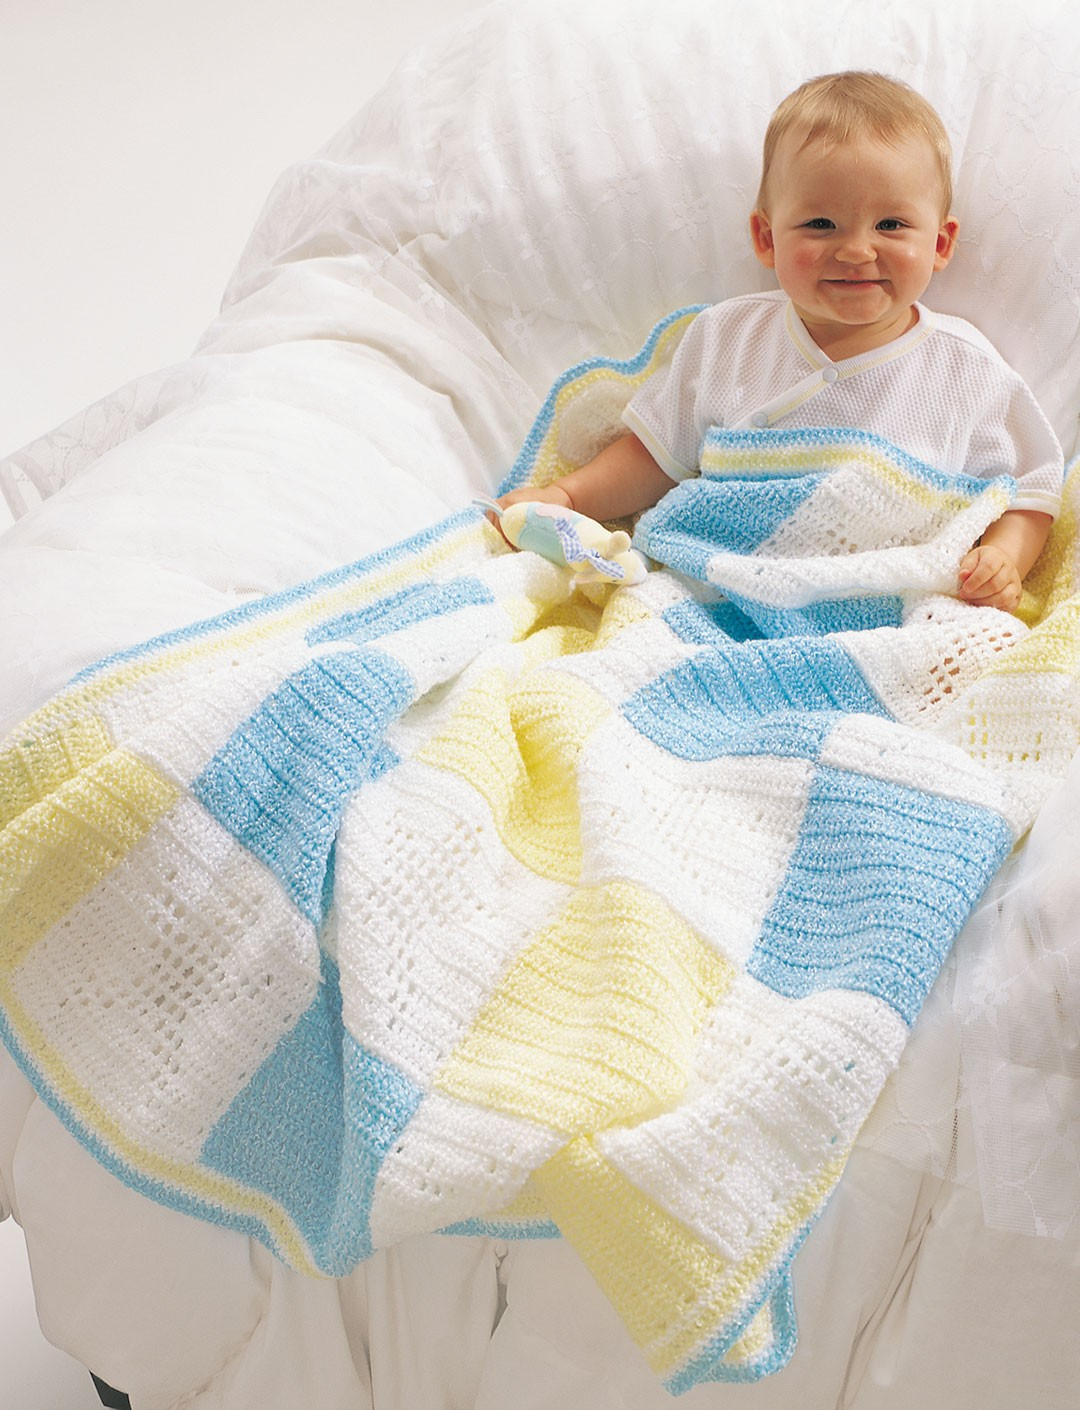 Star Baby Blanket Knitting Pattern : Twinkle Little Star Blanket - Patterns Yarnspirations